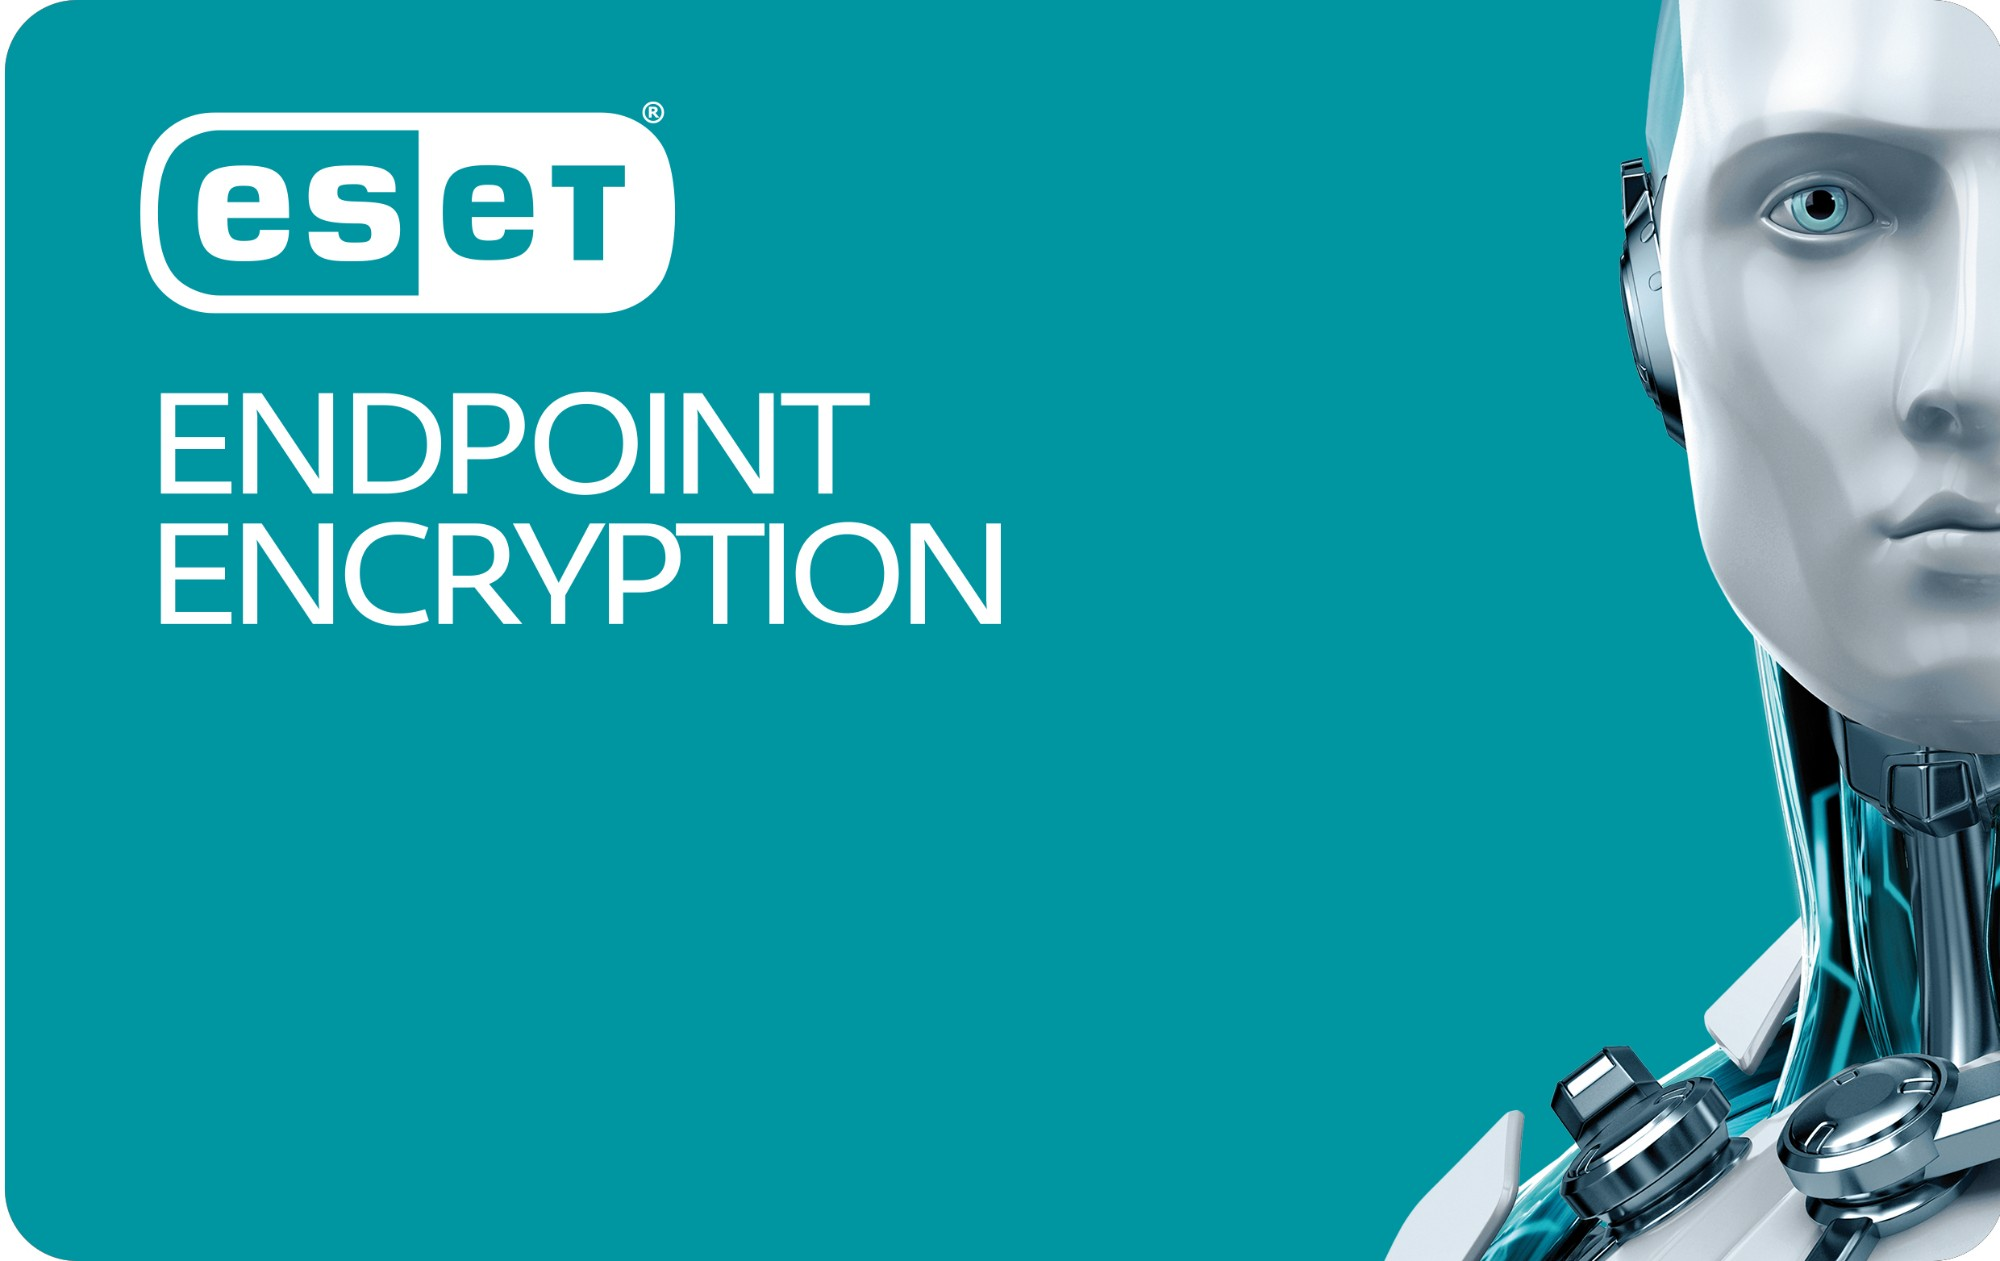 ESET Endpoint Encryption Pro 500 - 999 User Government (GOV) license 500 - 999 license(s) 3 year(s)